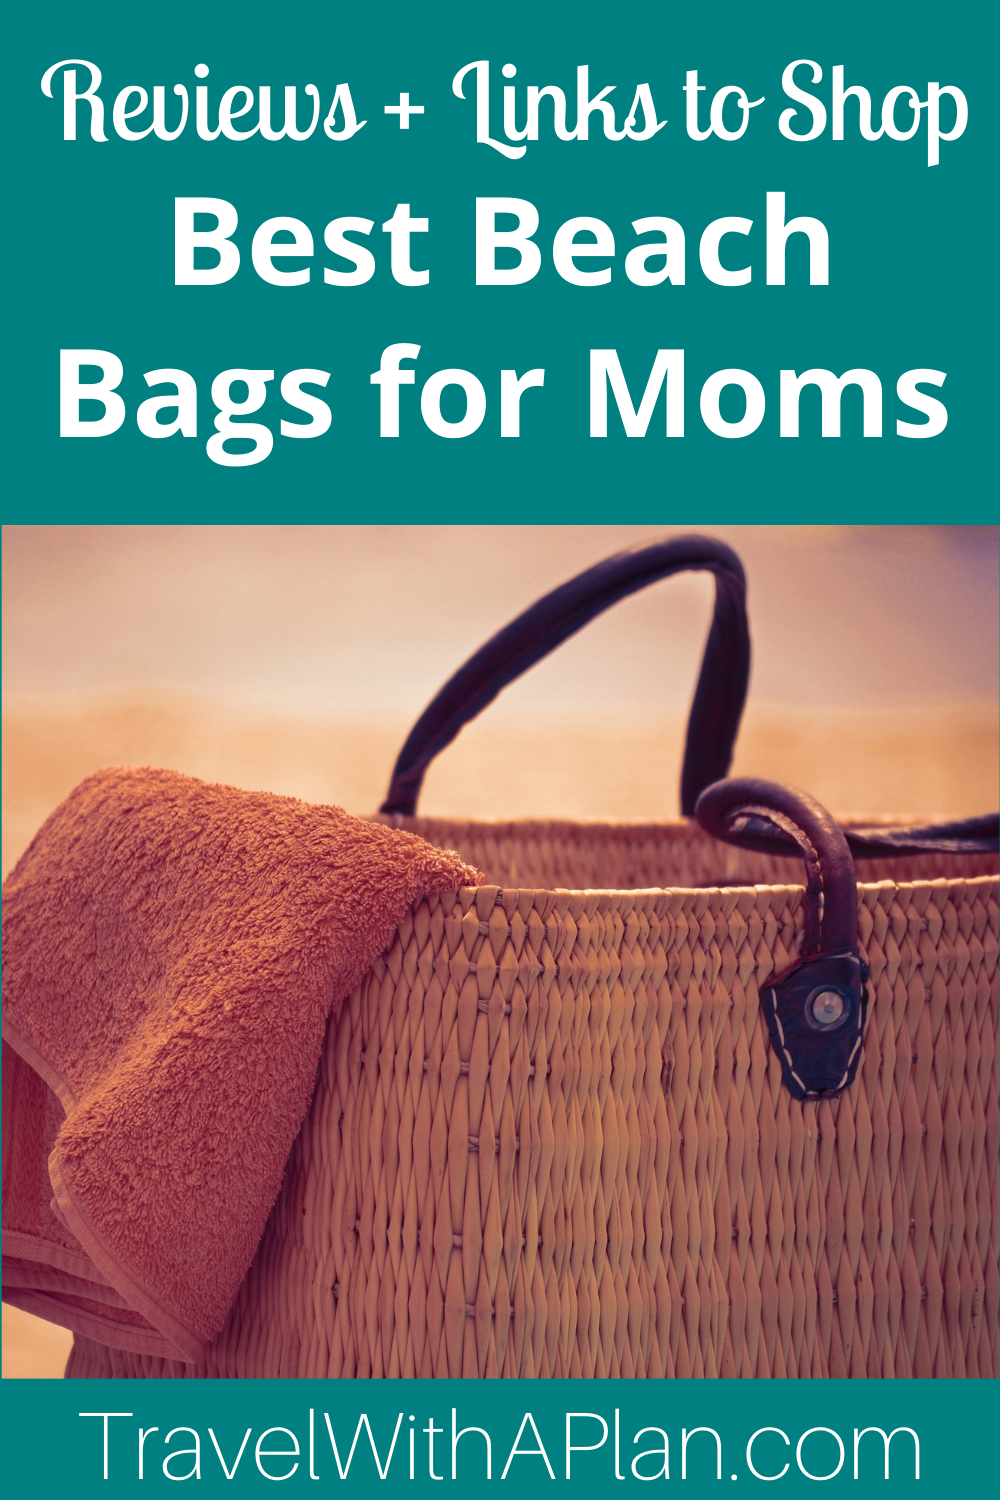 Get our list of the best beach bags for moms from top U.S. family travel blog, Travel With A Plan!